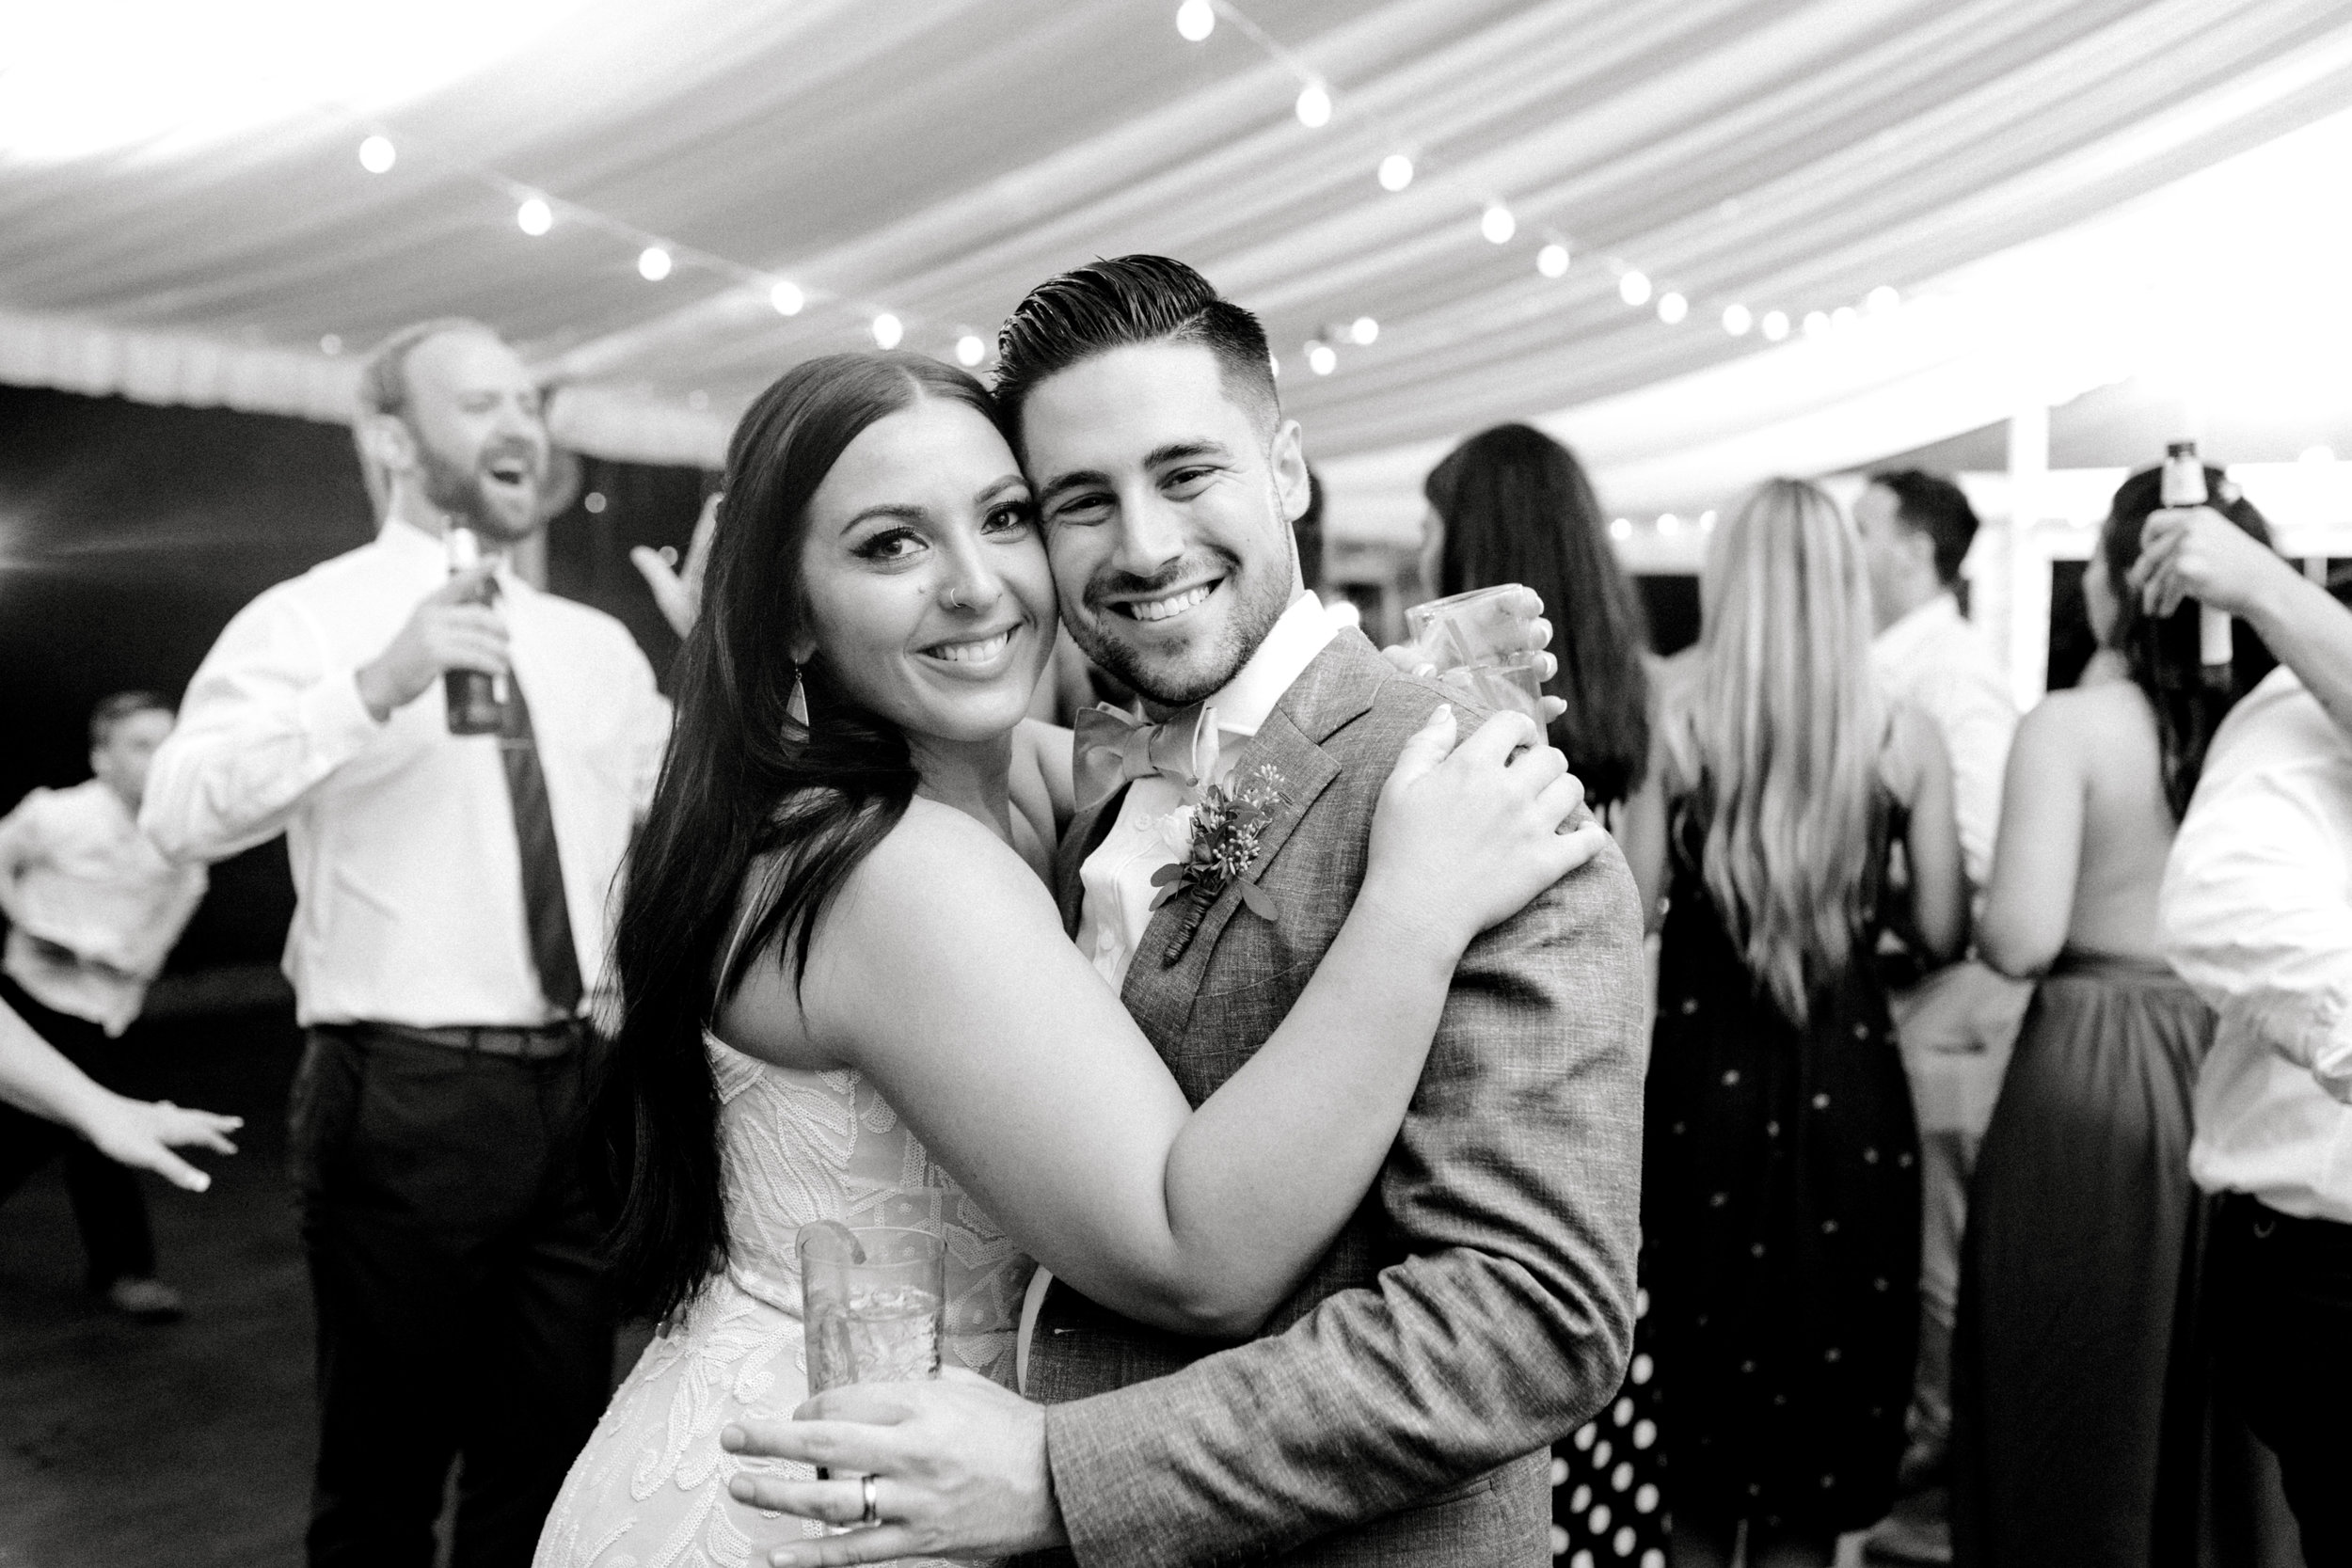 All smiles for this happy couple as they pose for one more photo at the reception of their bright boho chic Tyler Gardens wedding in Bucks County